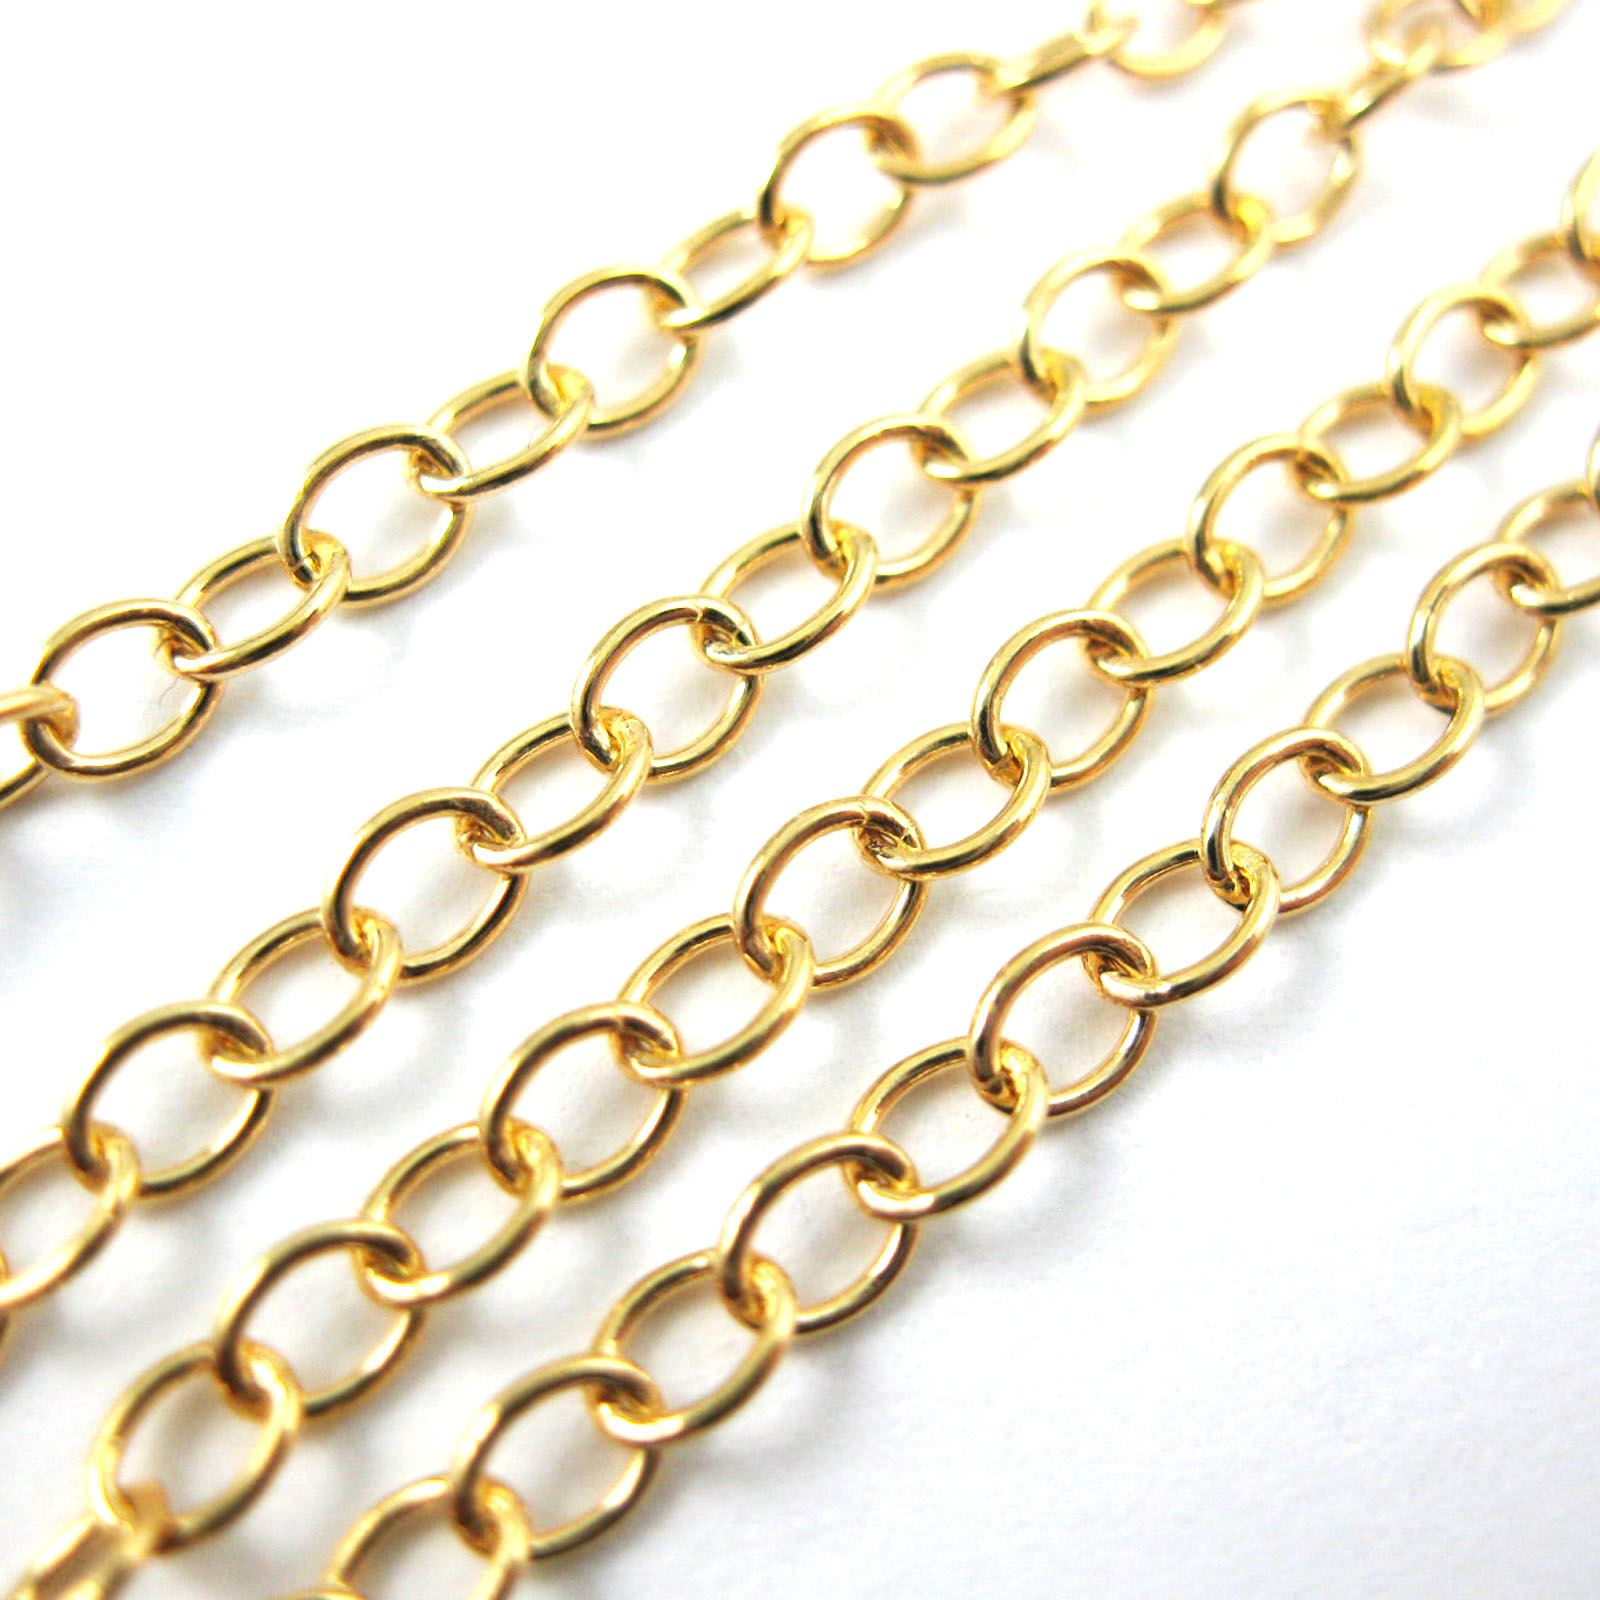 22k Gold Plated over Sterling Silver Vermeil, Unfinished Bulk Chain - Cable Oval - Cable Chain - Gold Plated Chain